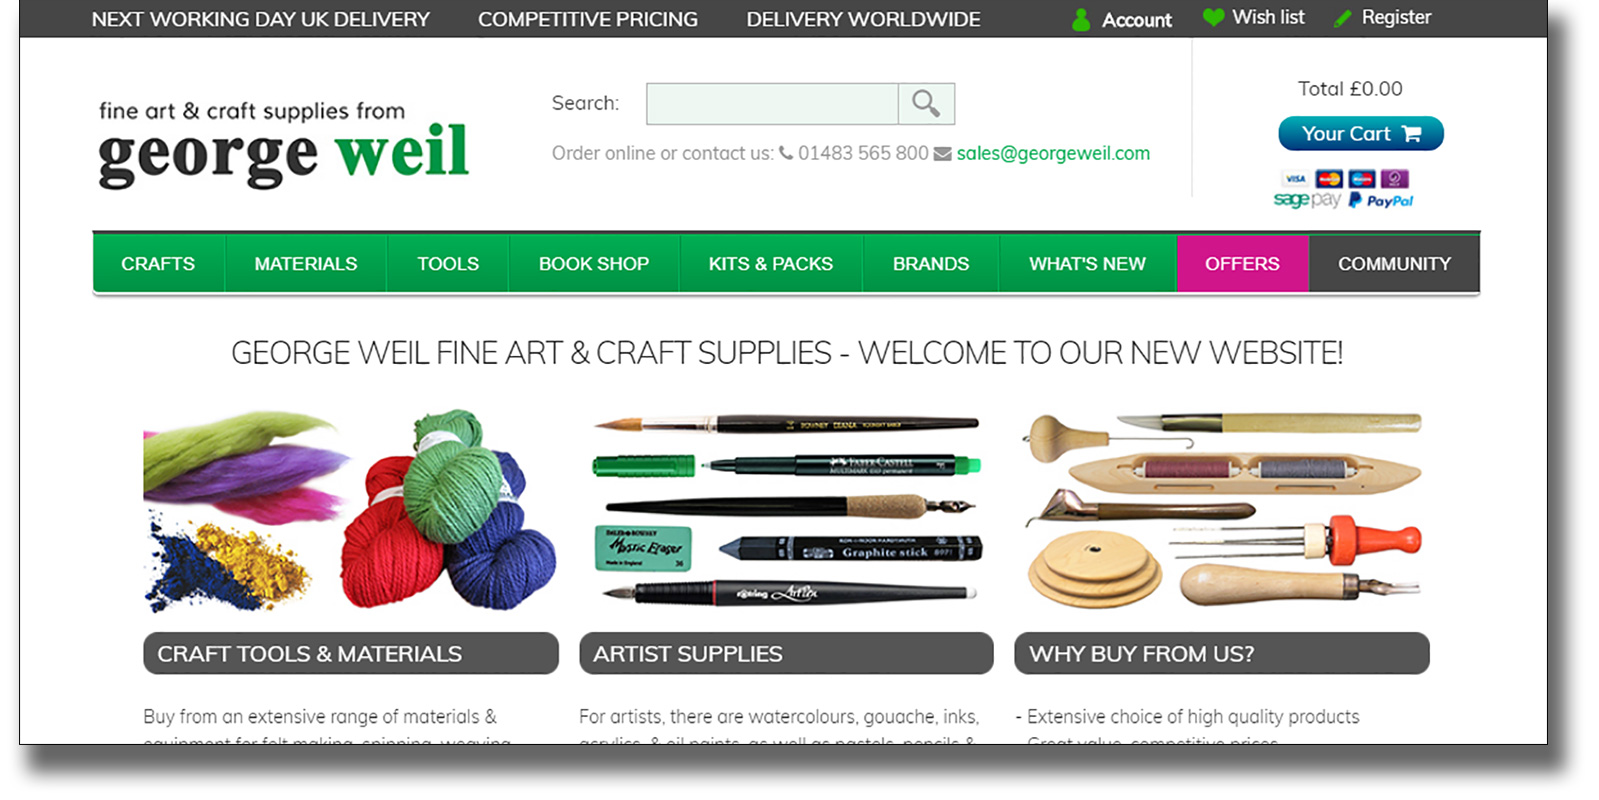 Introducing the new George Weil website